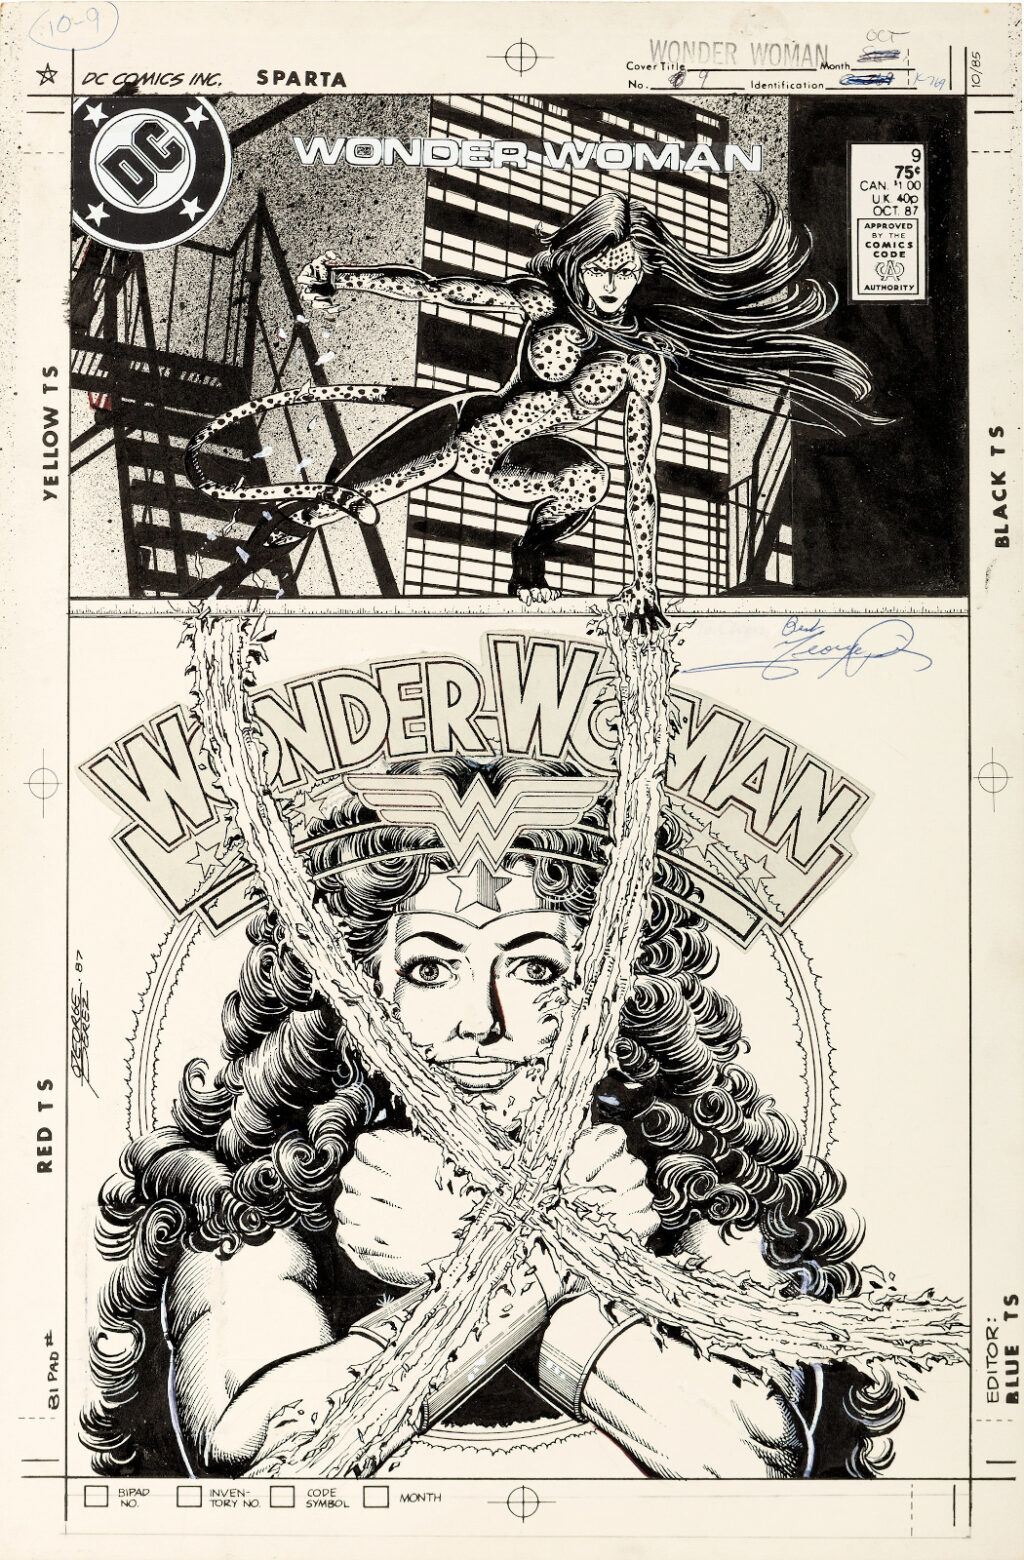 Wonder Woman issue 9 cover by George Perez